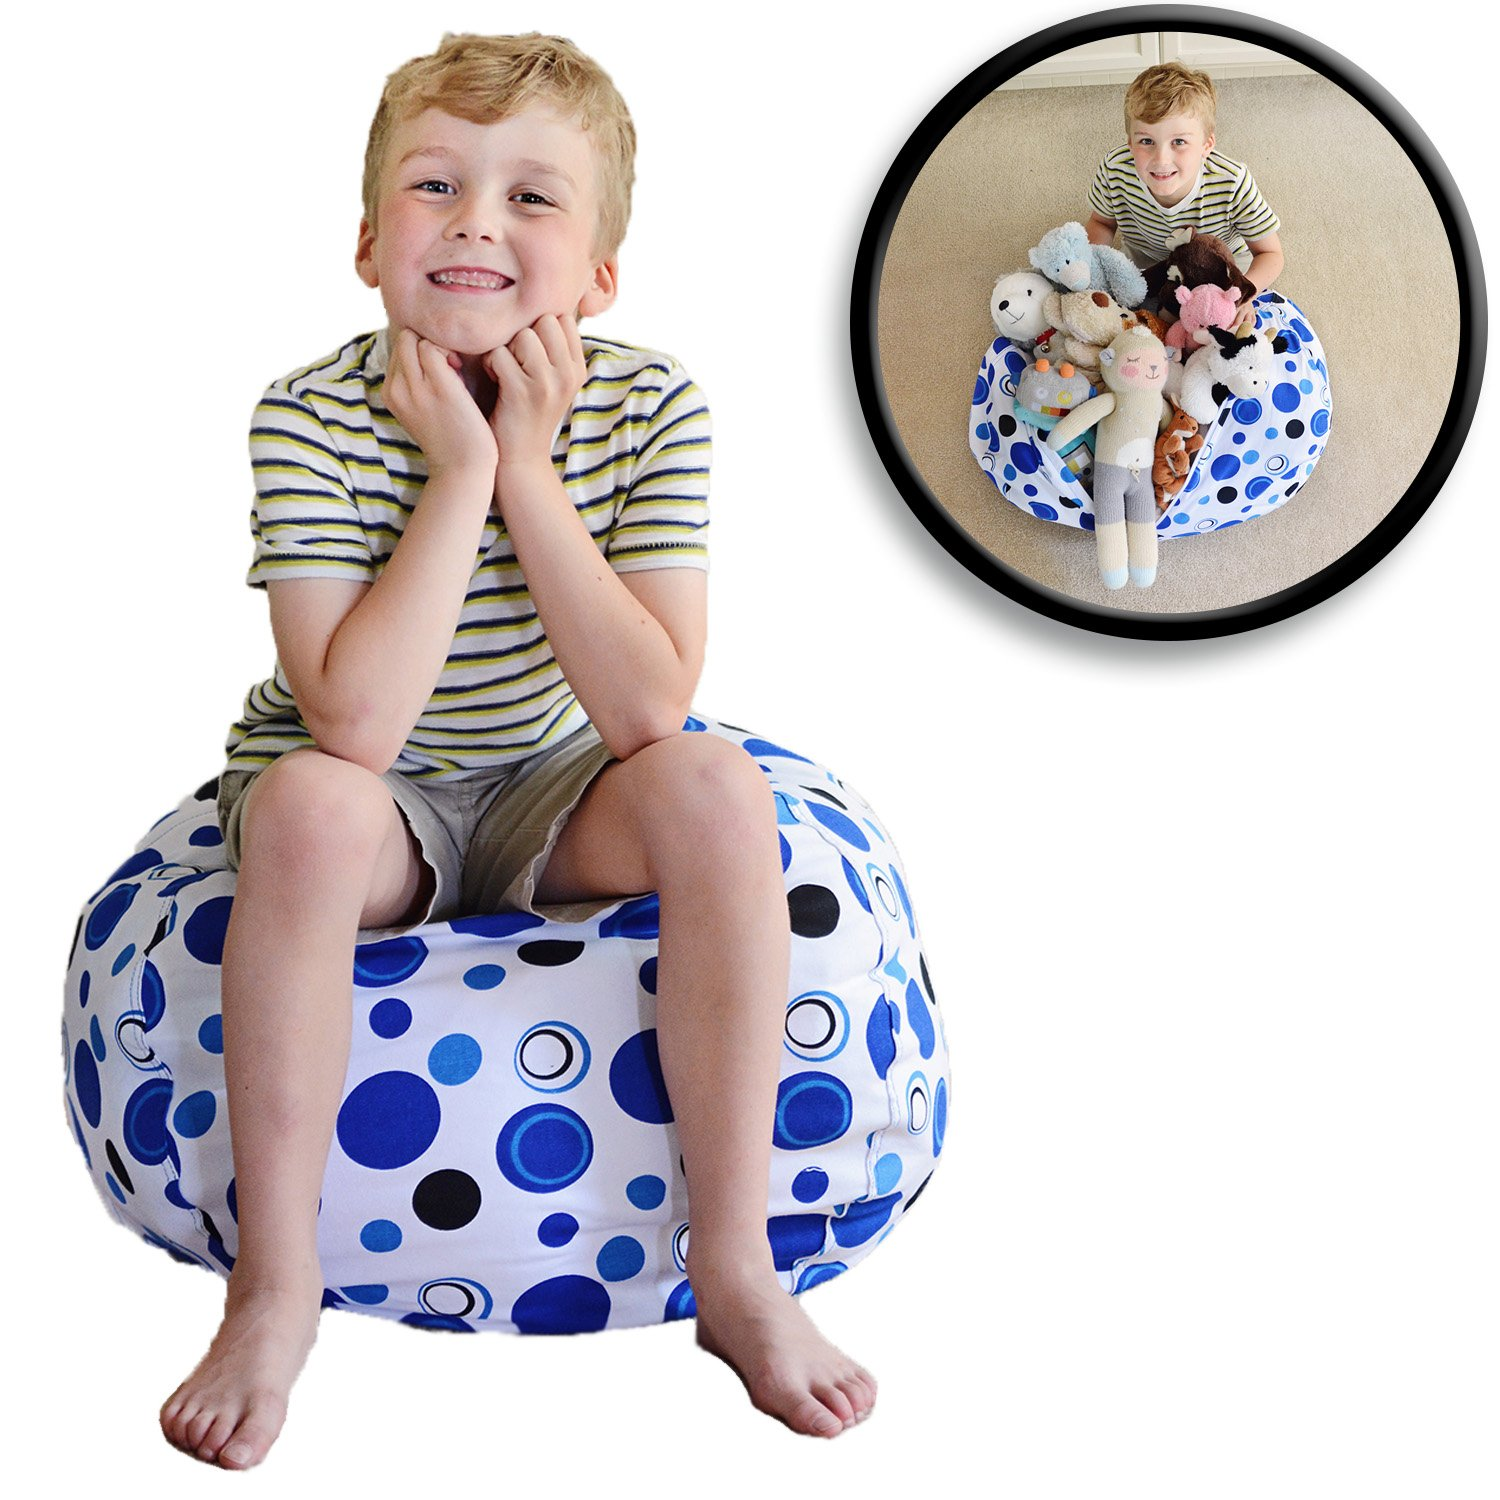 """Stuffed Animal Storage Bean Bag Chair - Premium Cotton Canvas - Clean Up The Room And Put Those Critters To Work For You! - By Creative Qt (27"""", Blue Polka Dot)"""